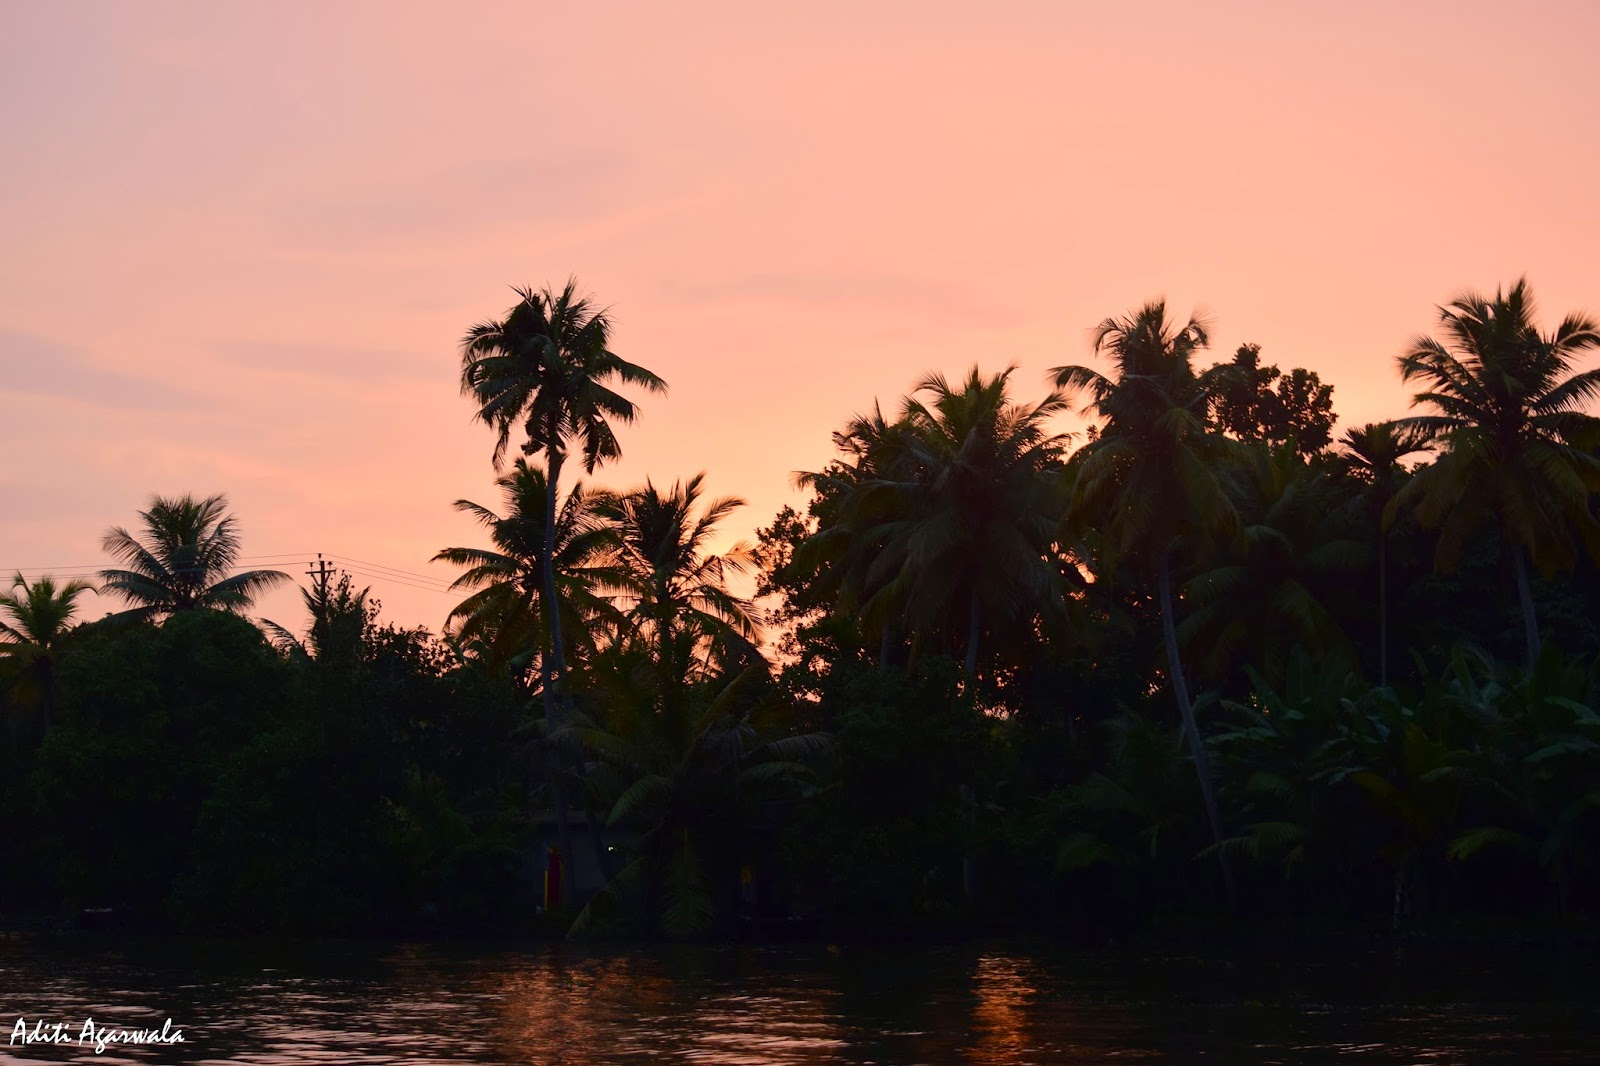 Sunset in the backwaters of Allepey, Kerala